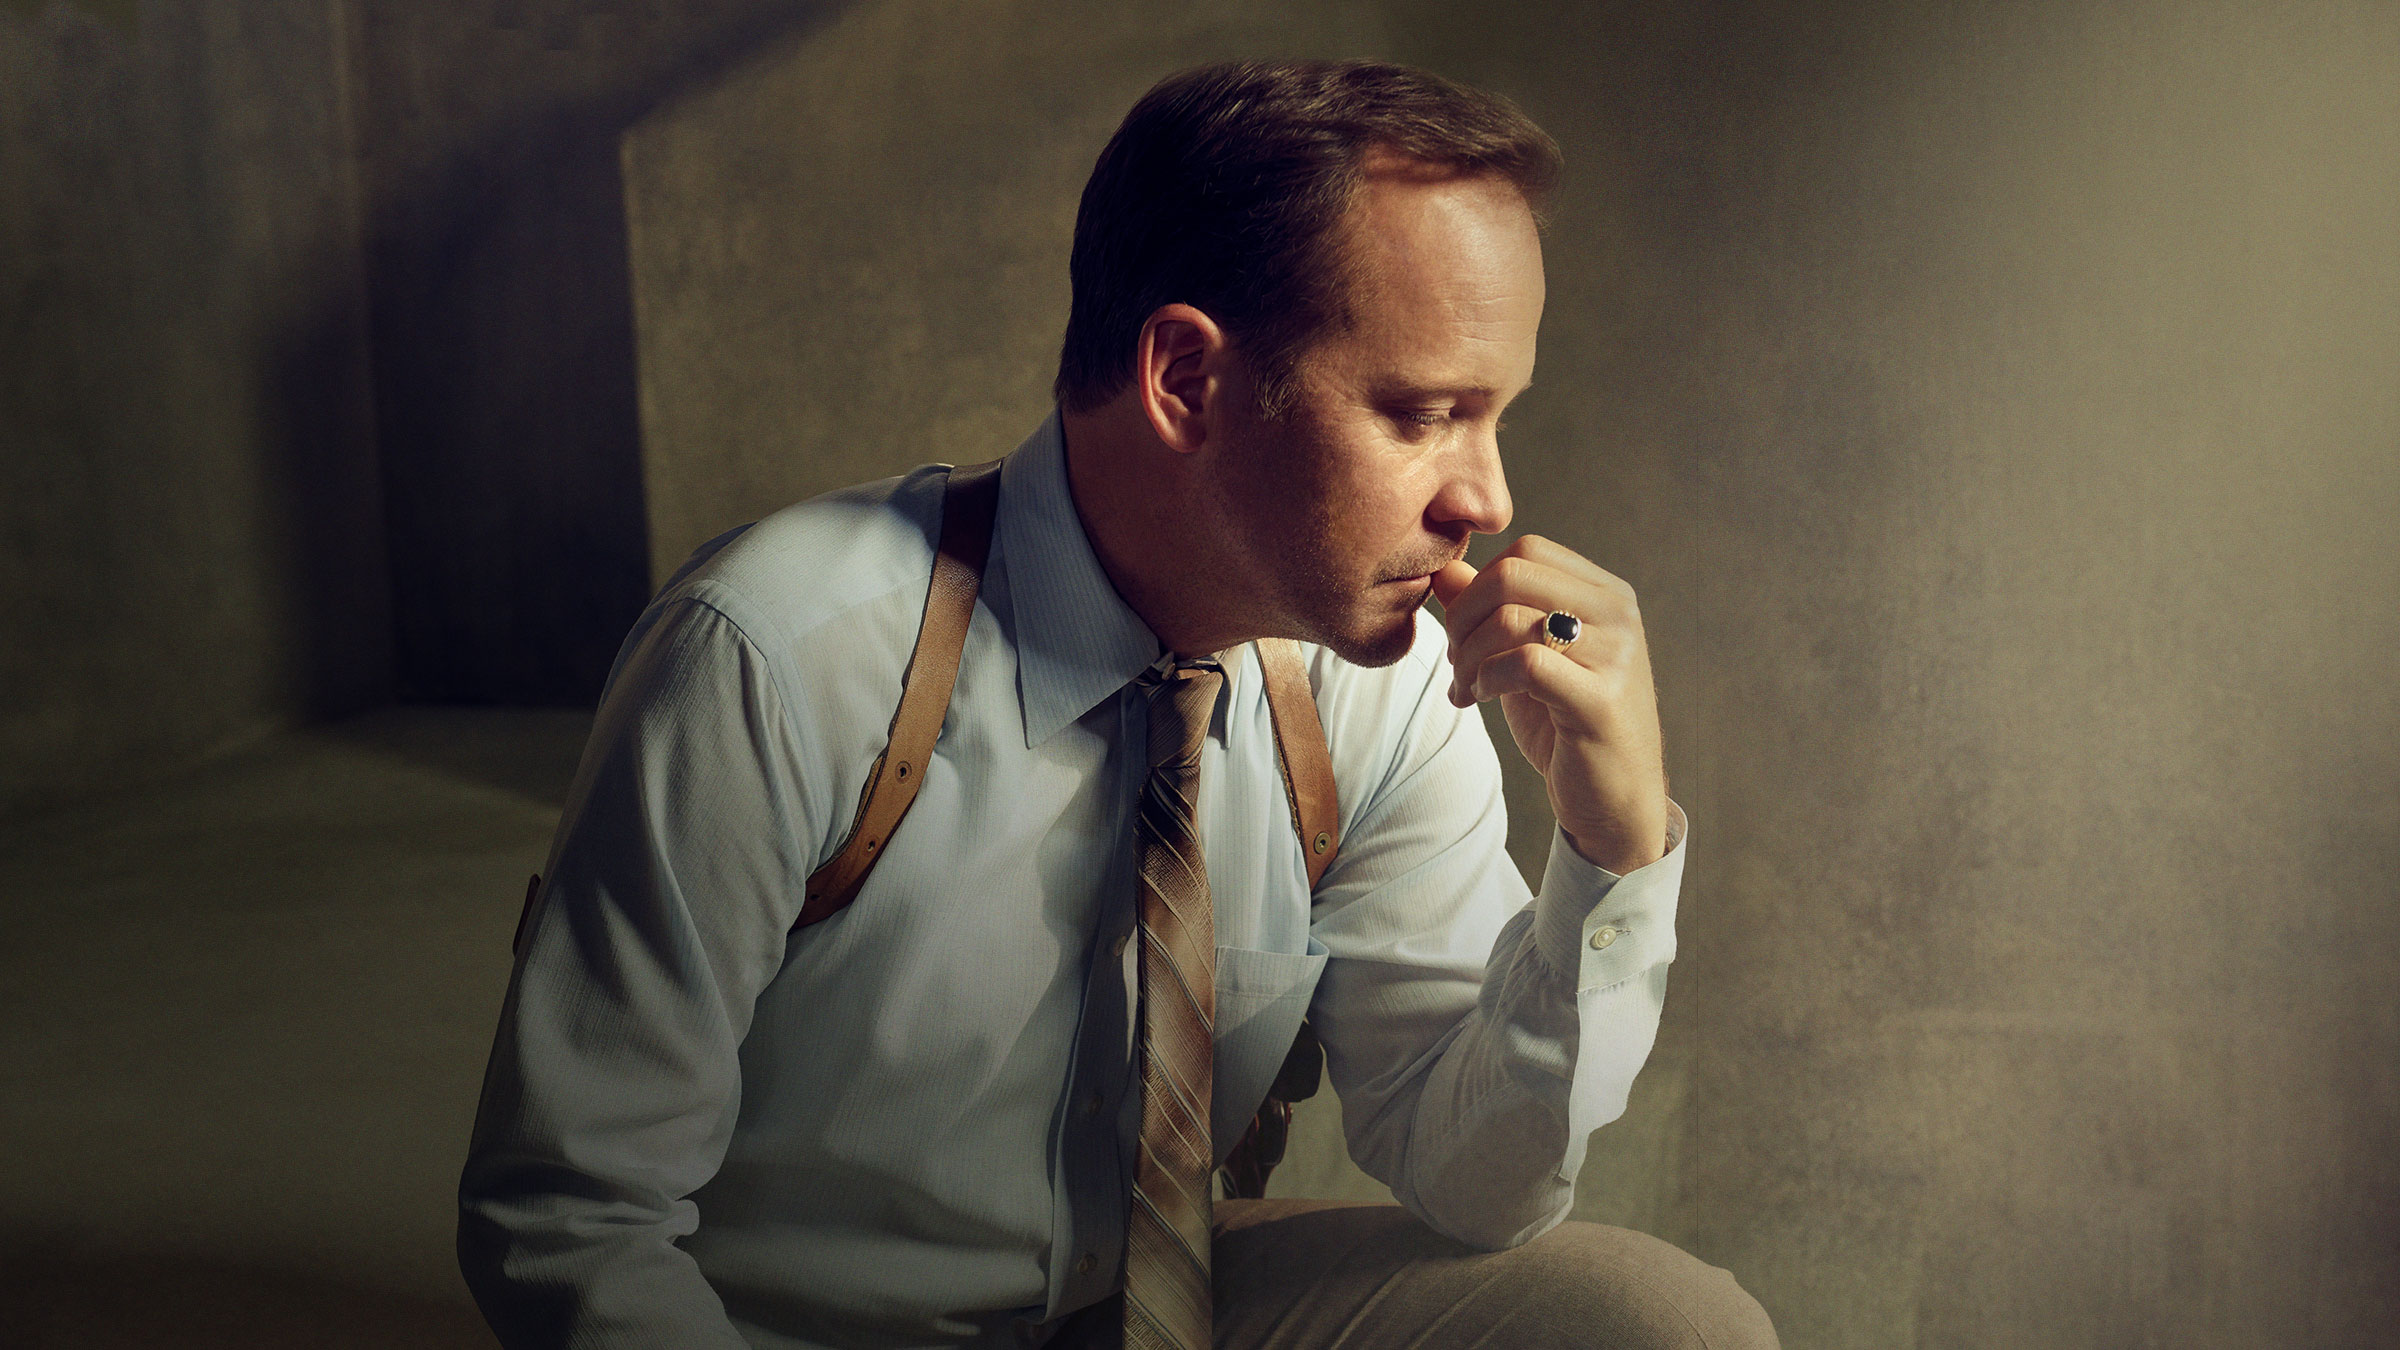 Peter Sarsgaard as Det. David Russell